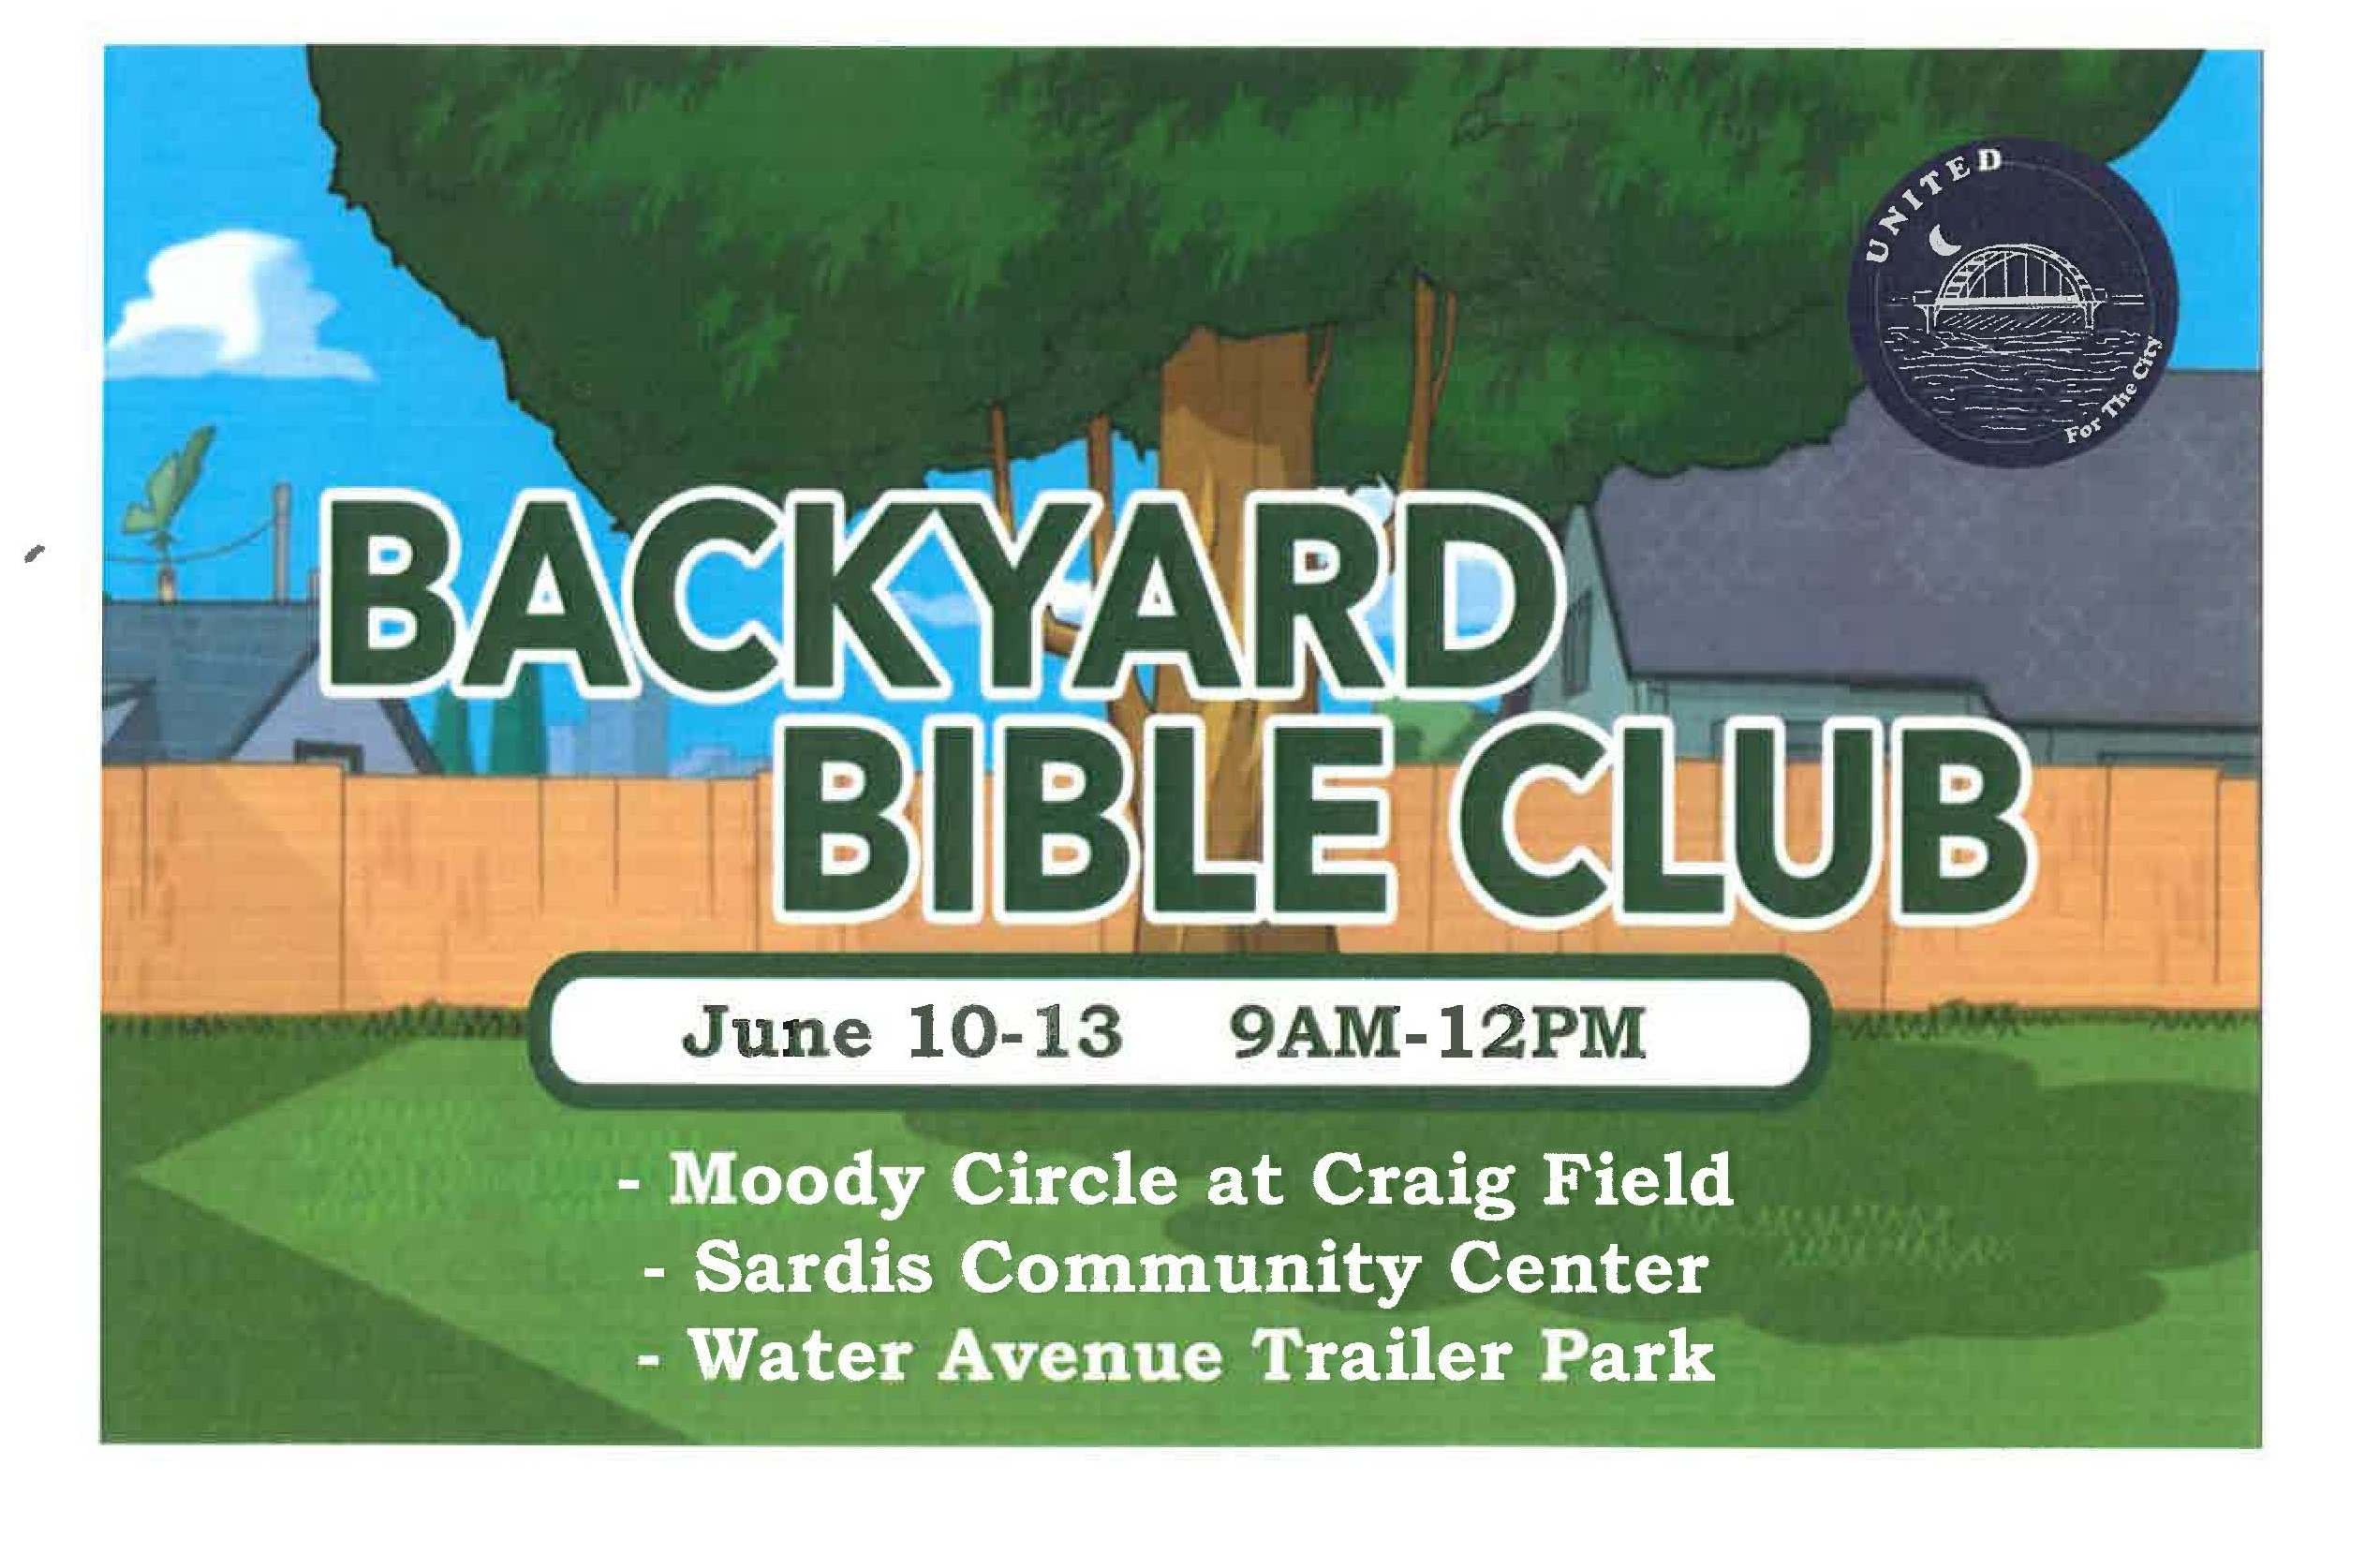 backyard bible club.jpg